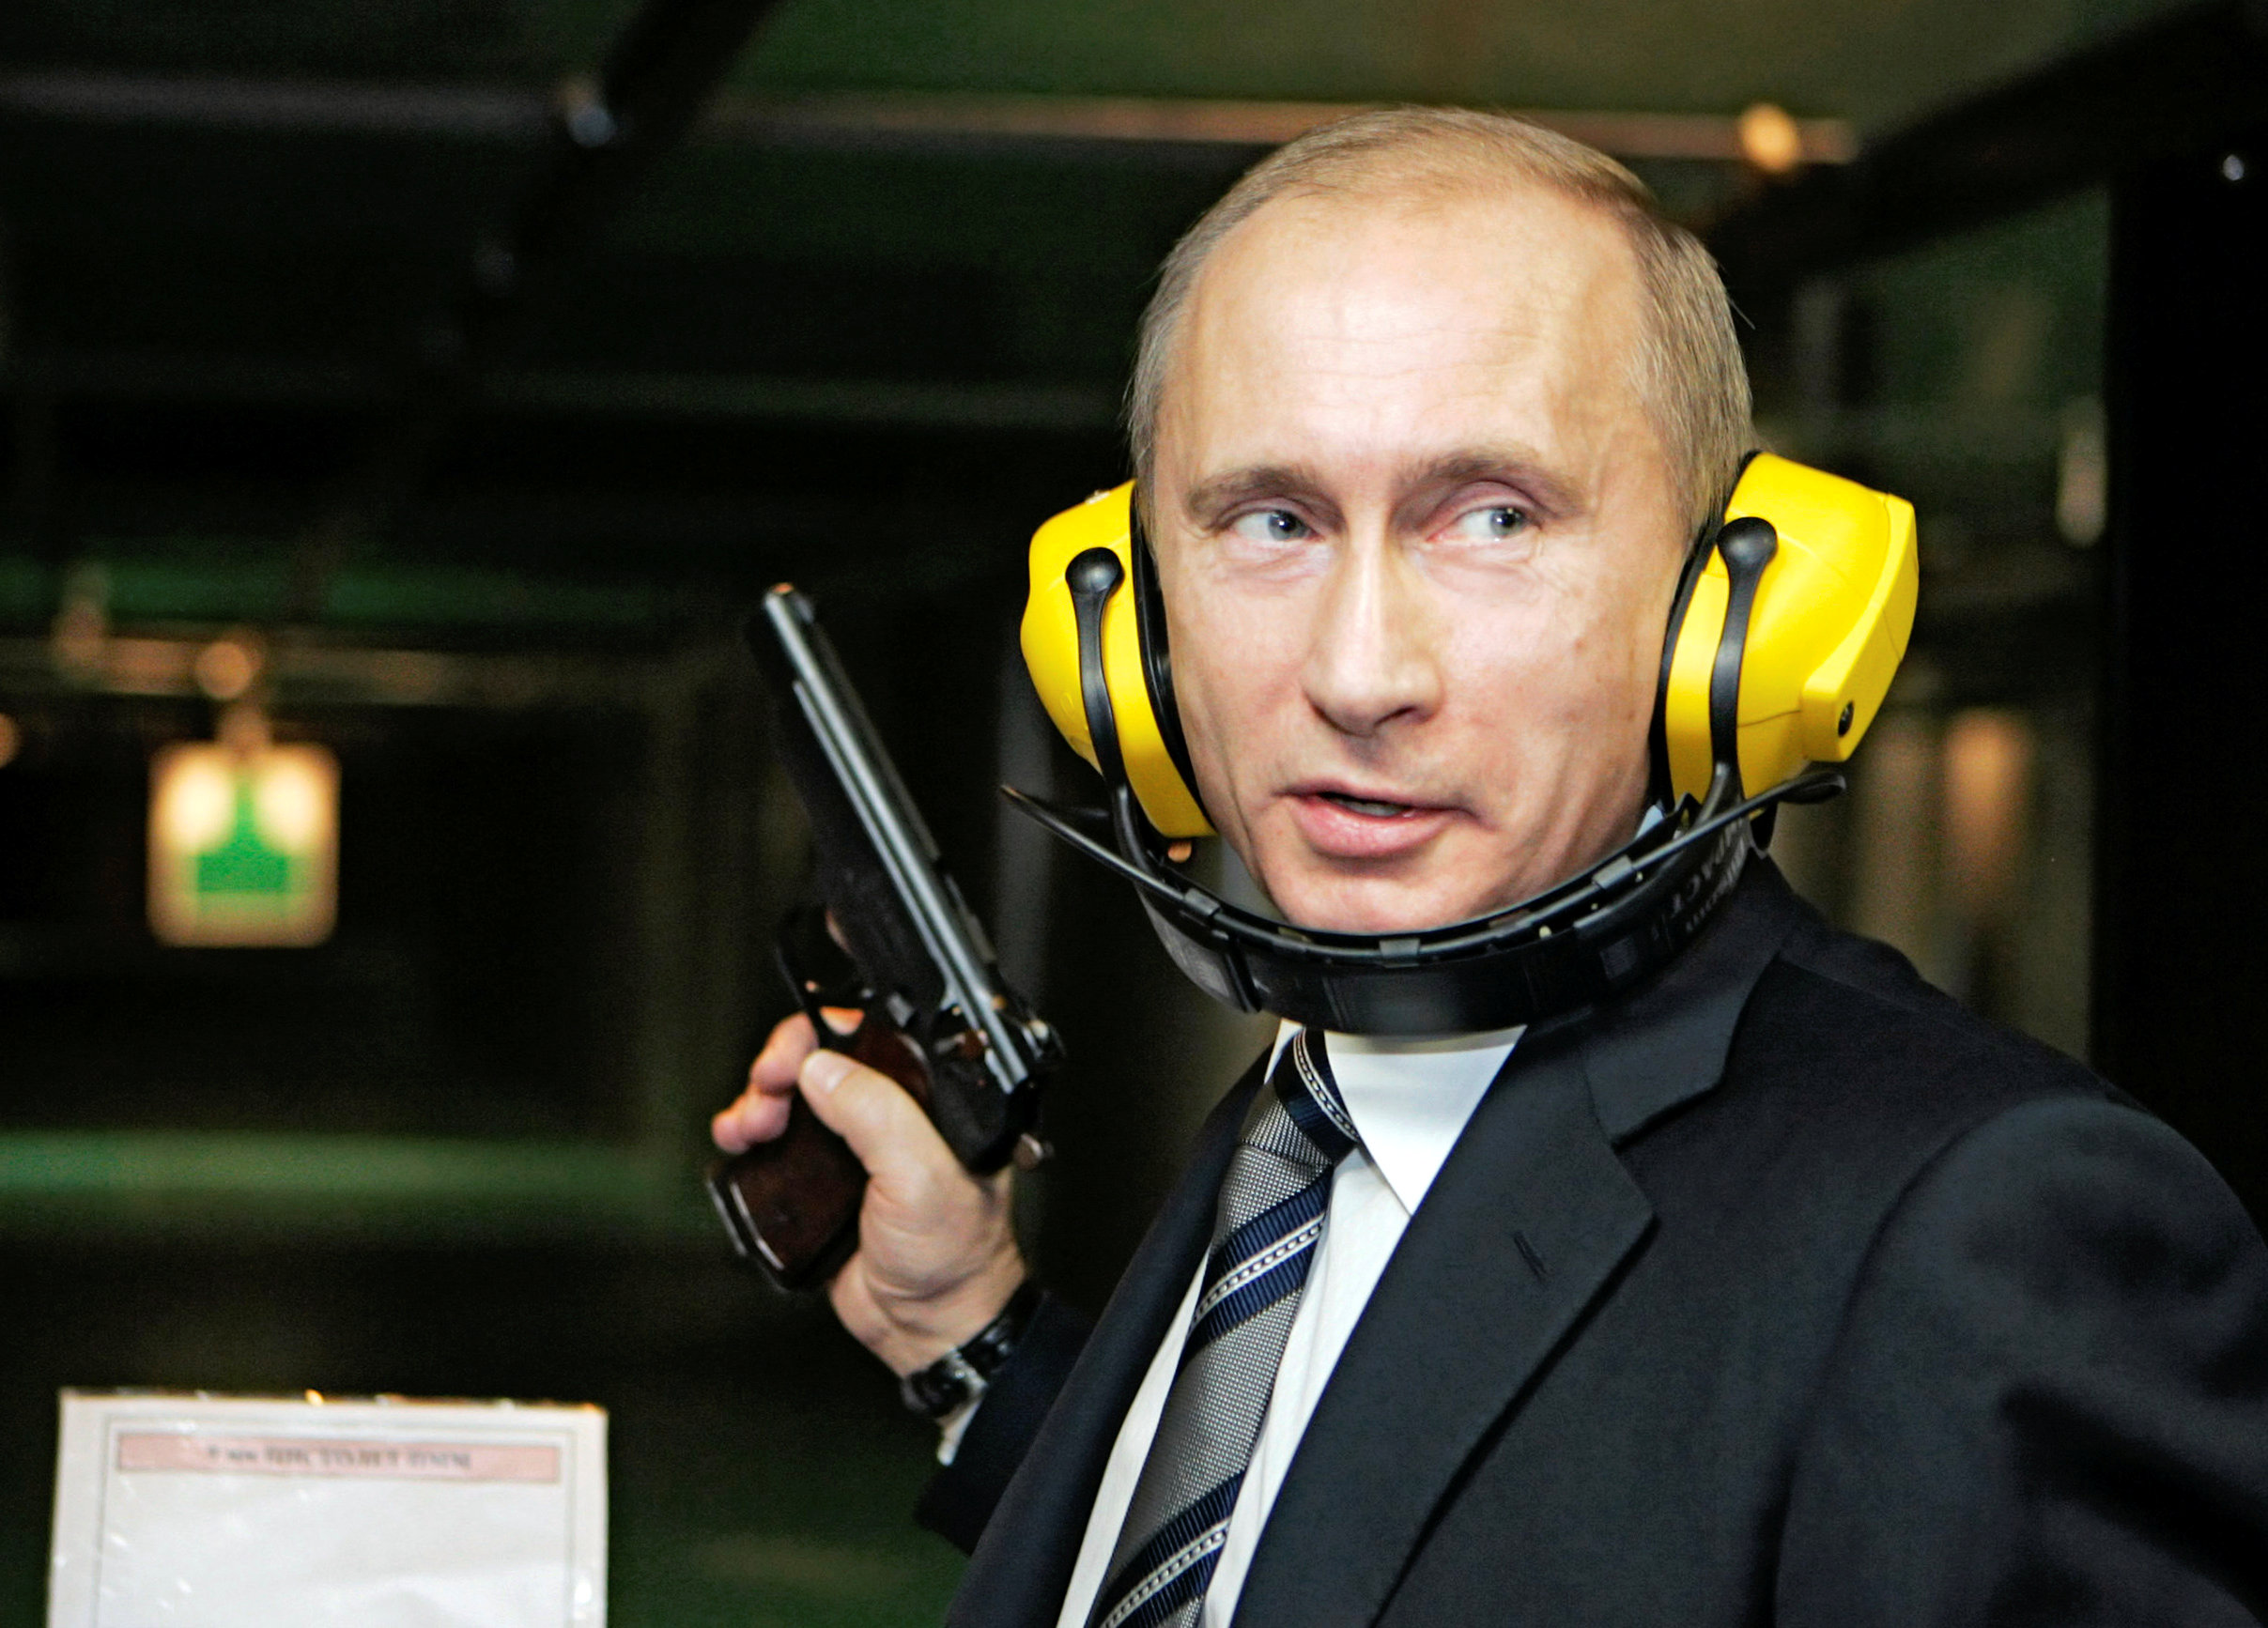 FILE PHOTO: Russian President Vladimir Putin stands with a gun at a shooting gallery of the new GRU military intelligence headquarters building as he visits it in Moscow November 8, 2006.